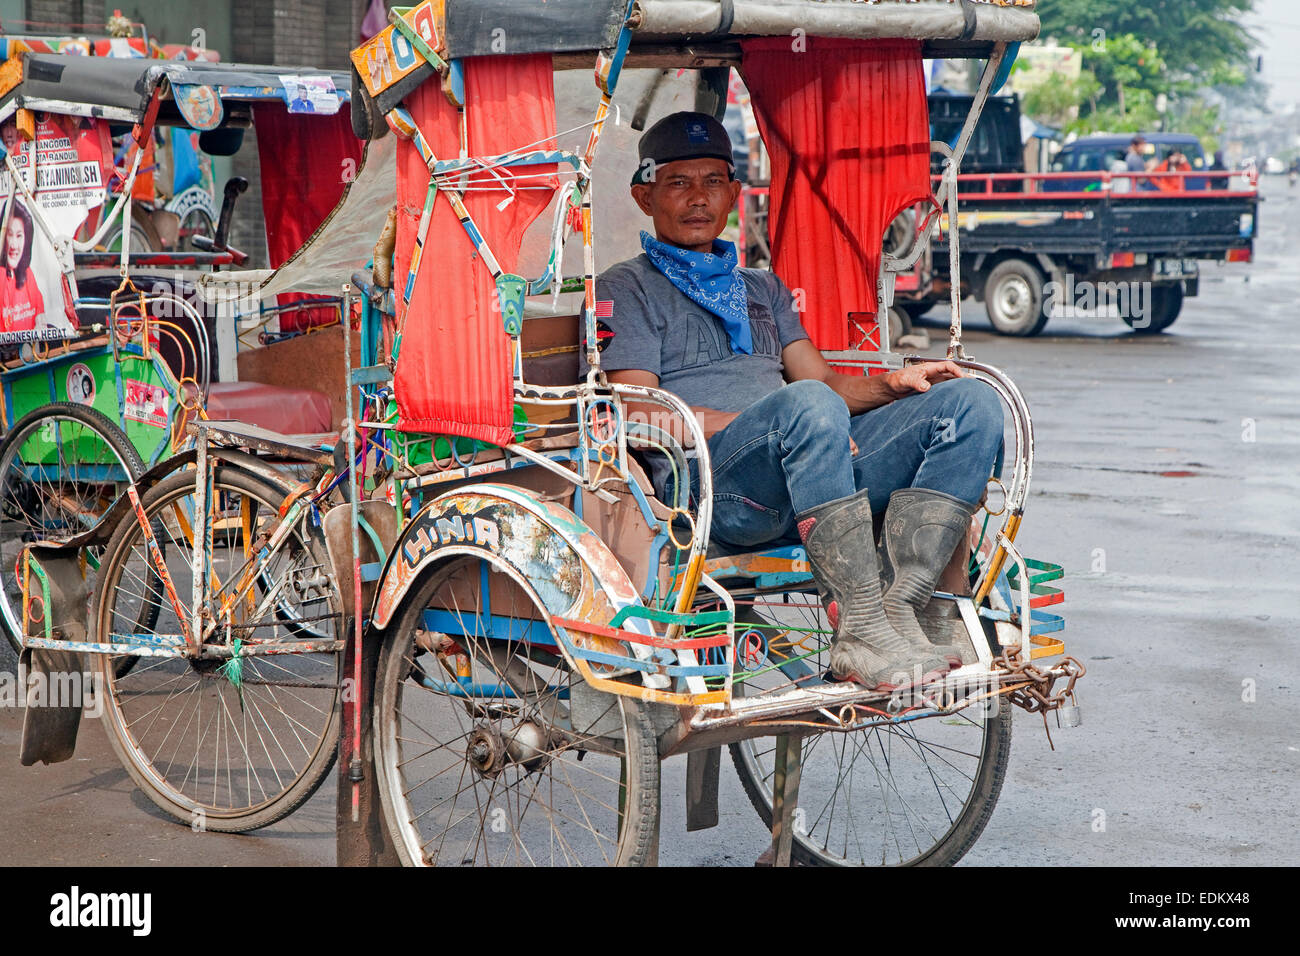 Indonesian becak driver waiting for clients in his cycle rickshaw, Kota Bandung, West Java, Indonesia - Stock Image